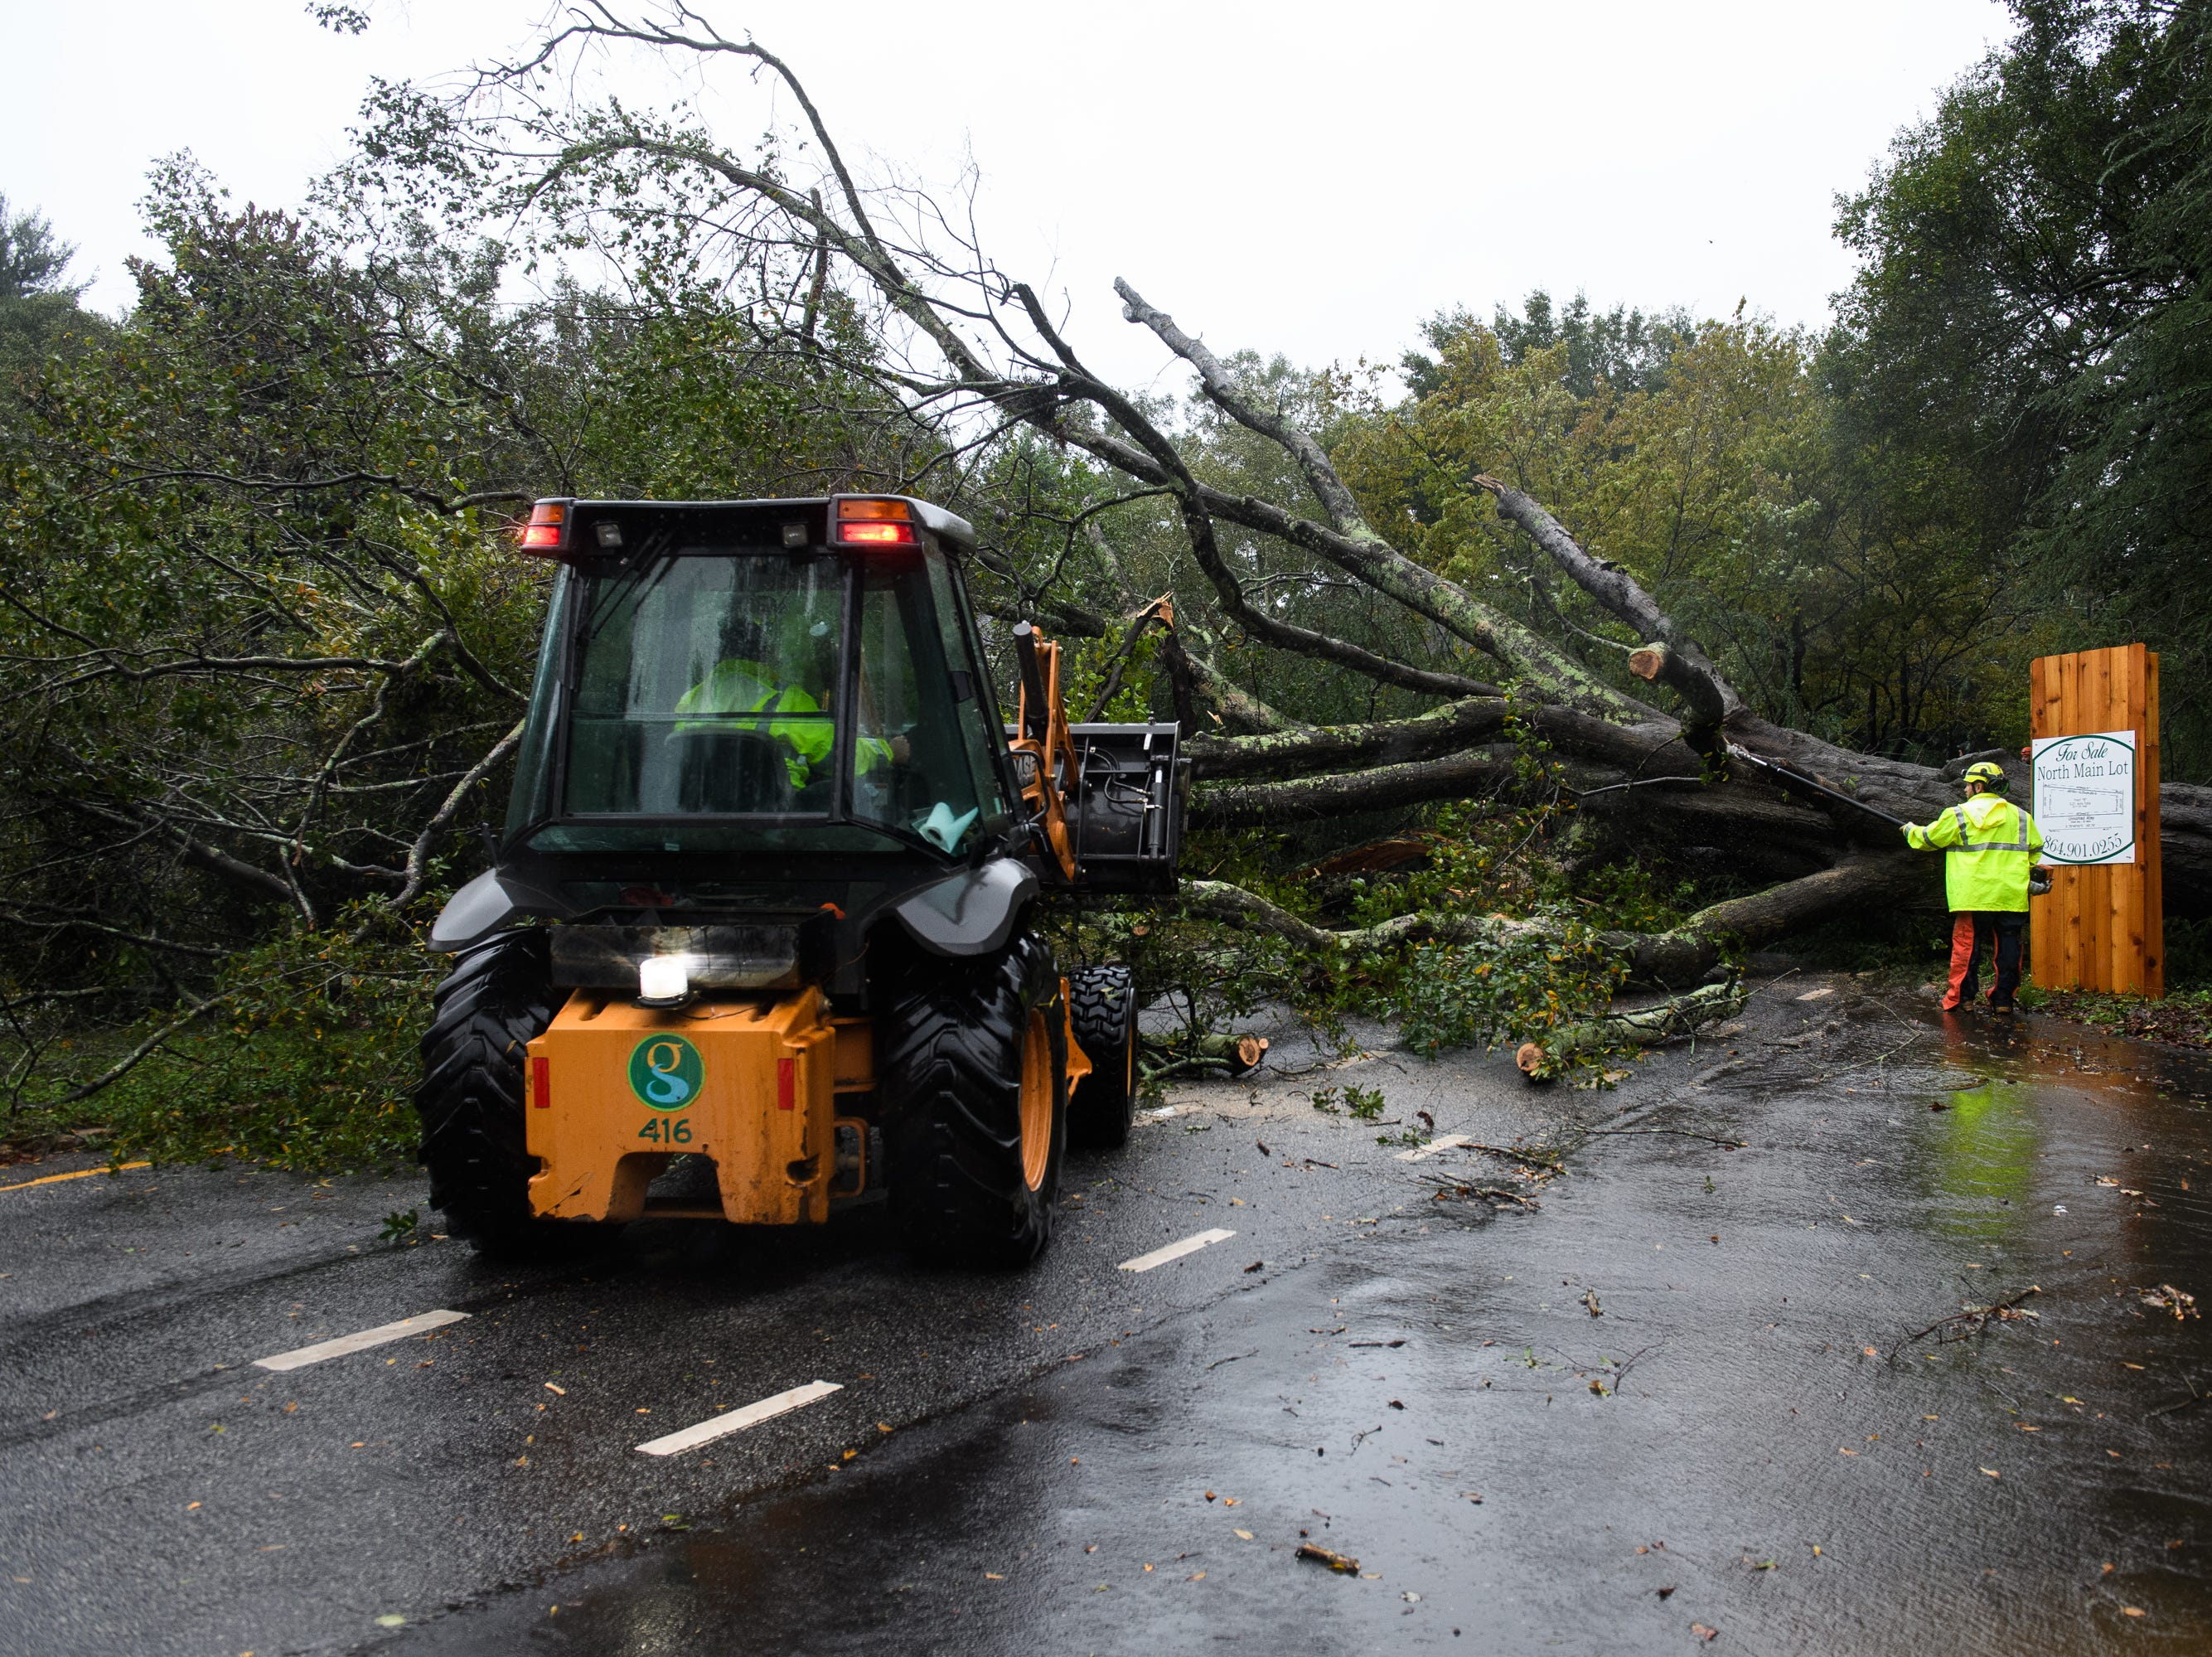 A worker begins to cut down a tree that fell on North Main Street as Tropical Storm Michael hits the Greenville area on Thursday, Oct. 11, 2018.